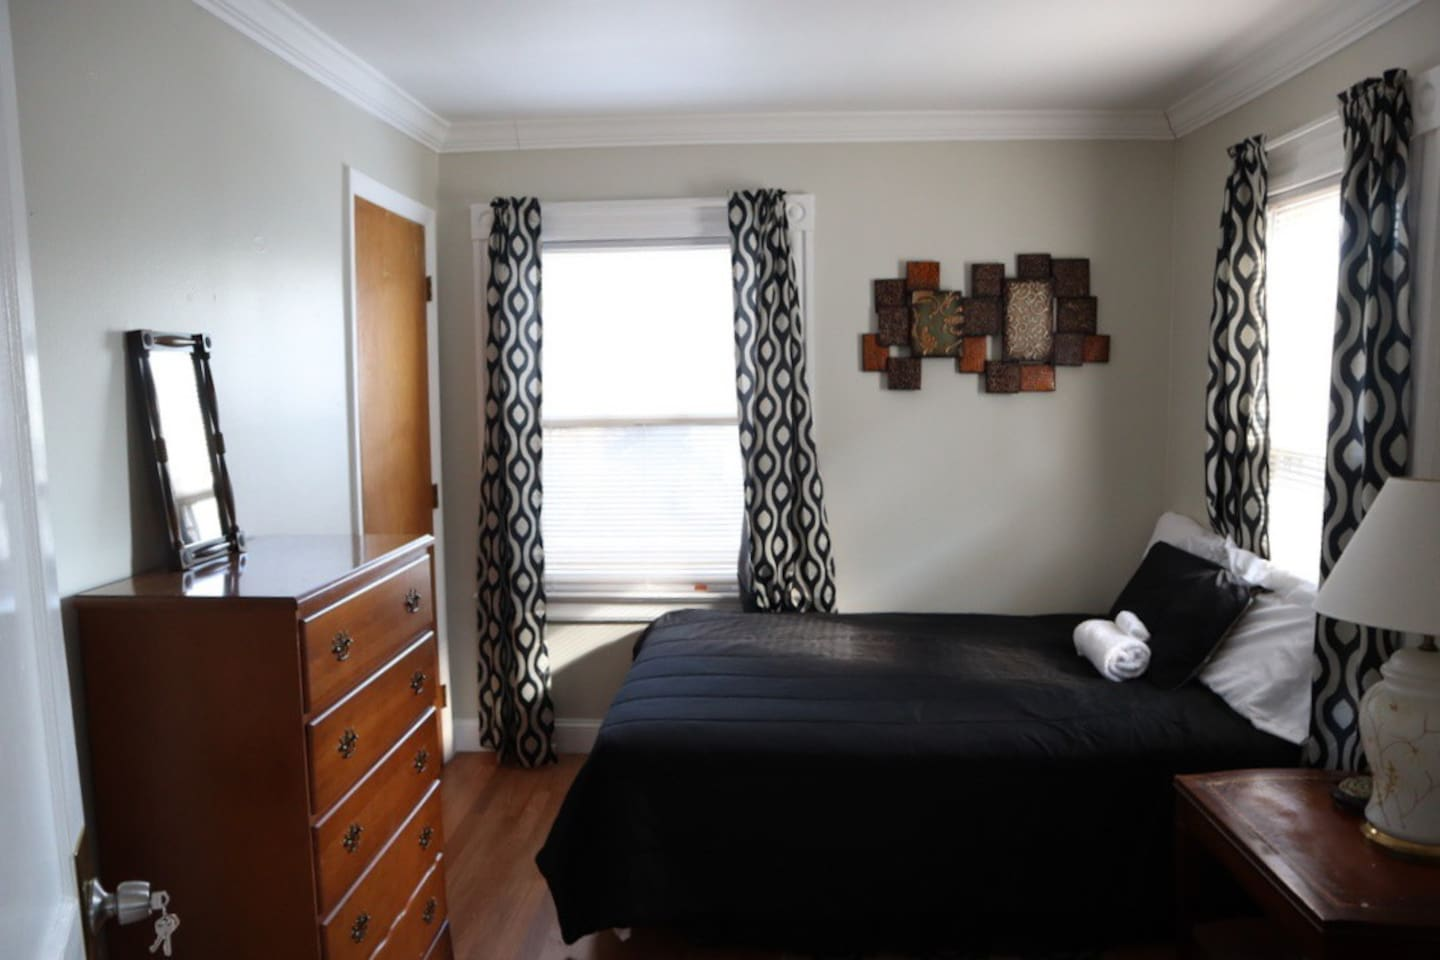 This room is located in a second-floor apartment. The apartment has recently been renovated with an eat-in kitchen and living room. The bedroom is located off the living room and has a full-size bed, closet, dresser and lounge chair.